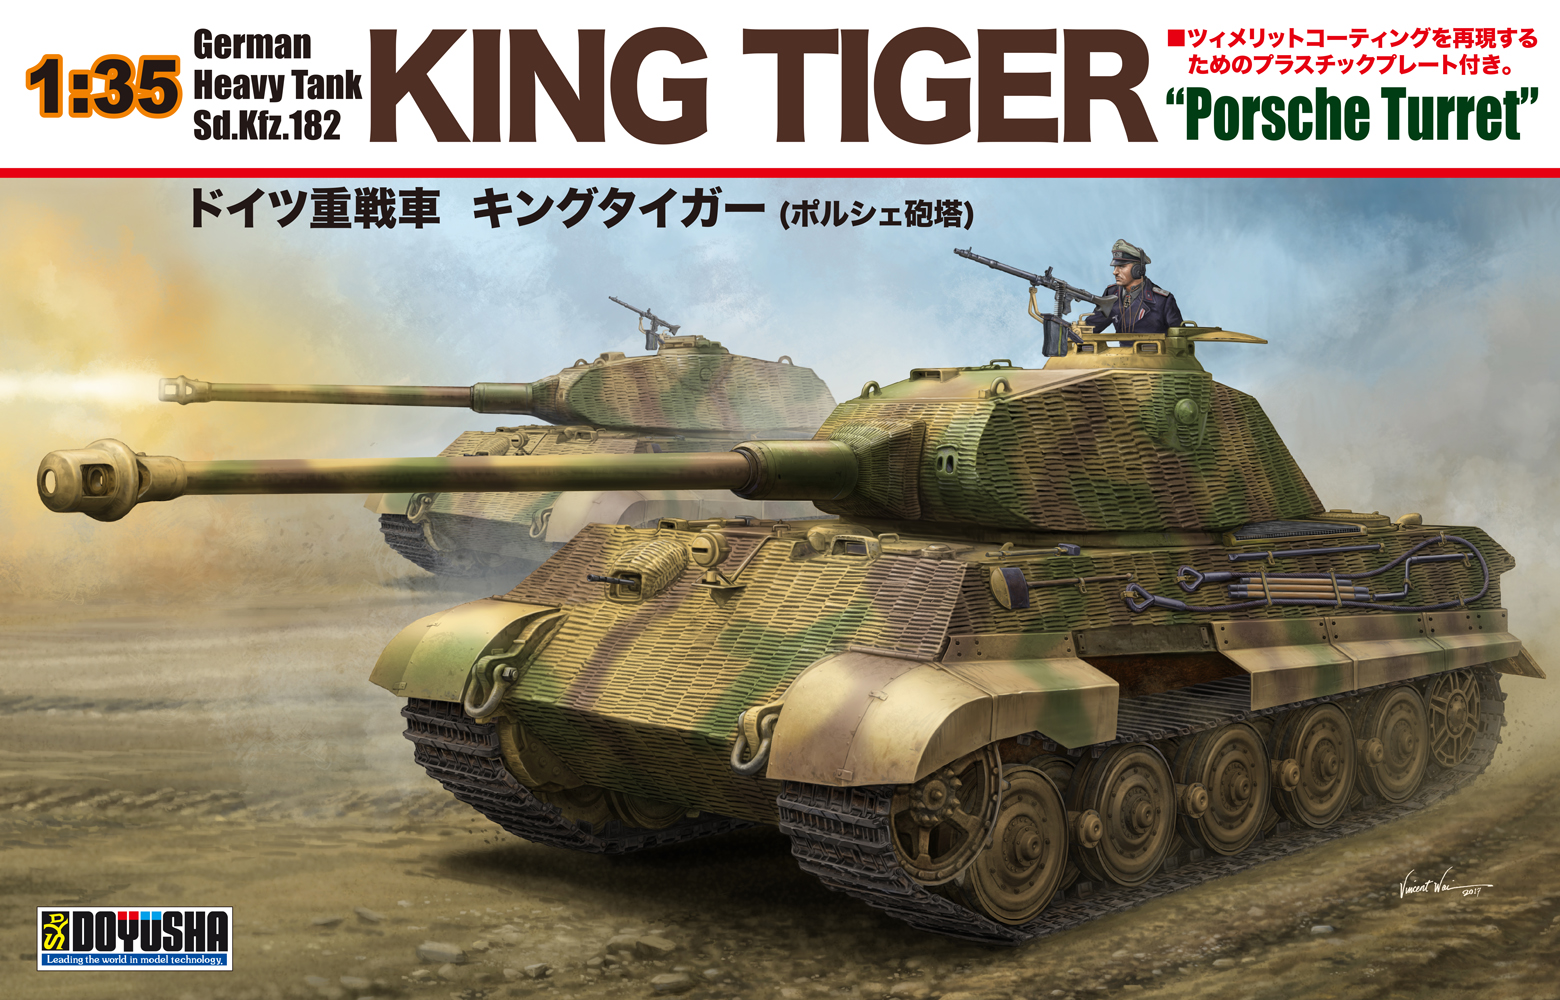 Doyusha 1/35 German Heavy Tank Sd.Kfz.182 KING TIGER (Porsche Turret)